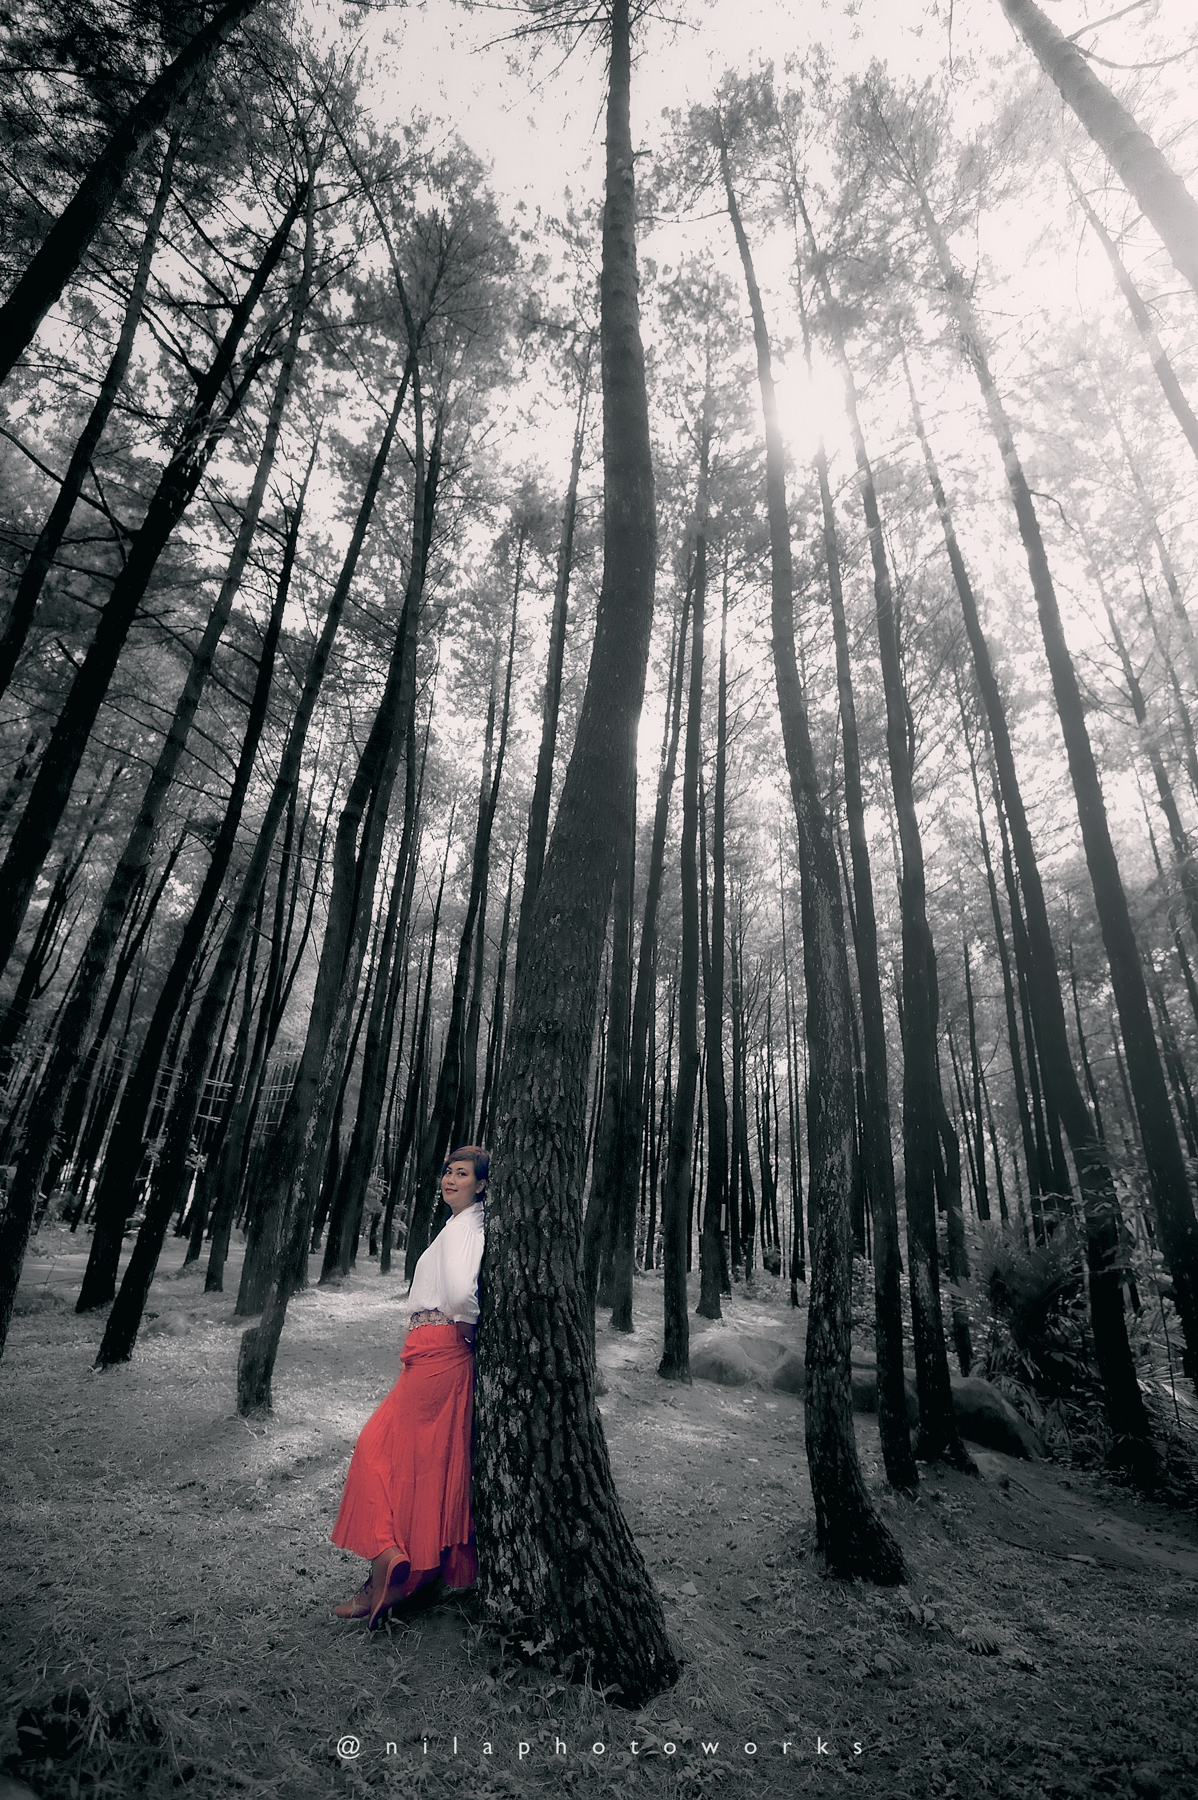 Feel The Breeze Of The Forrest